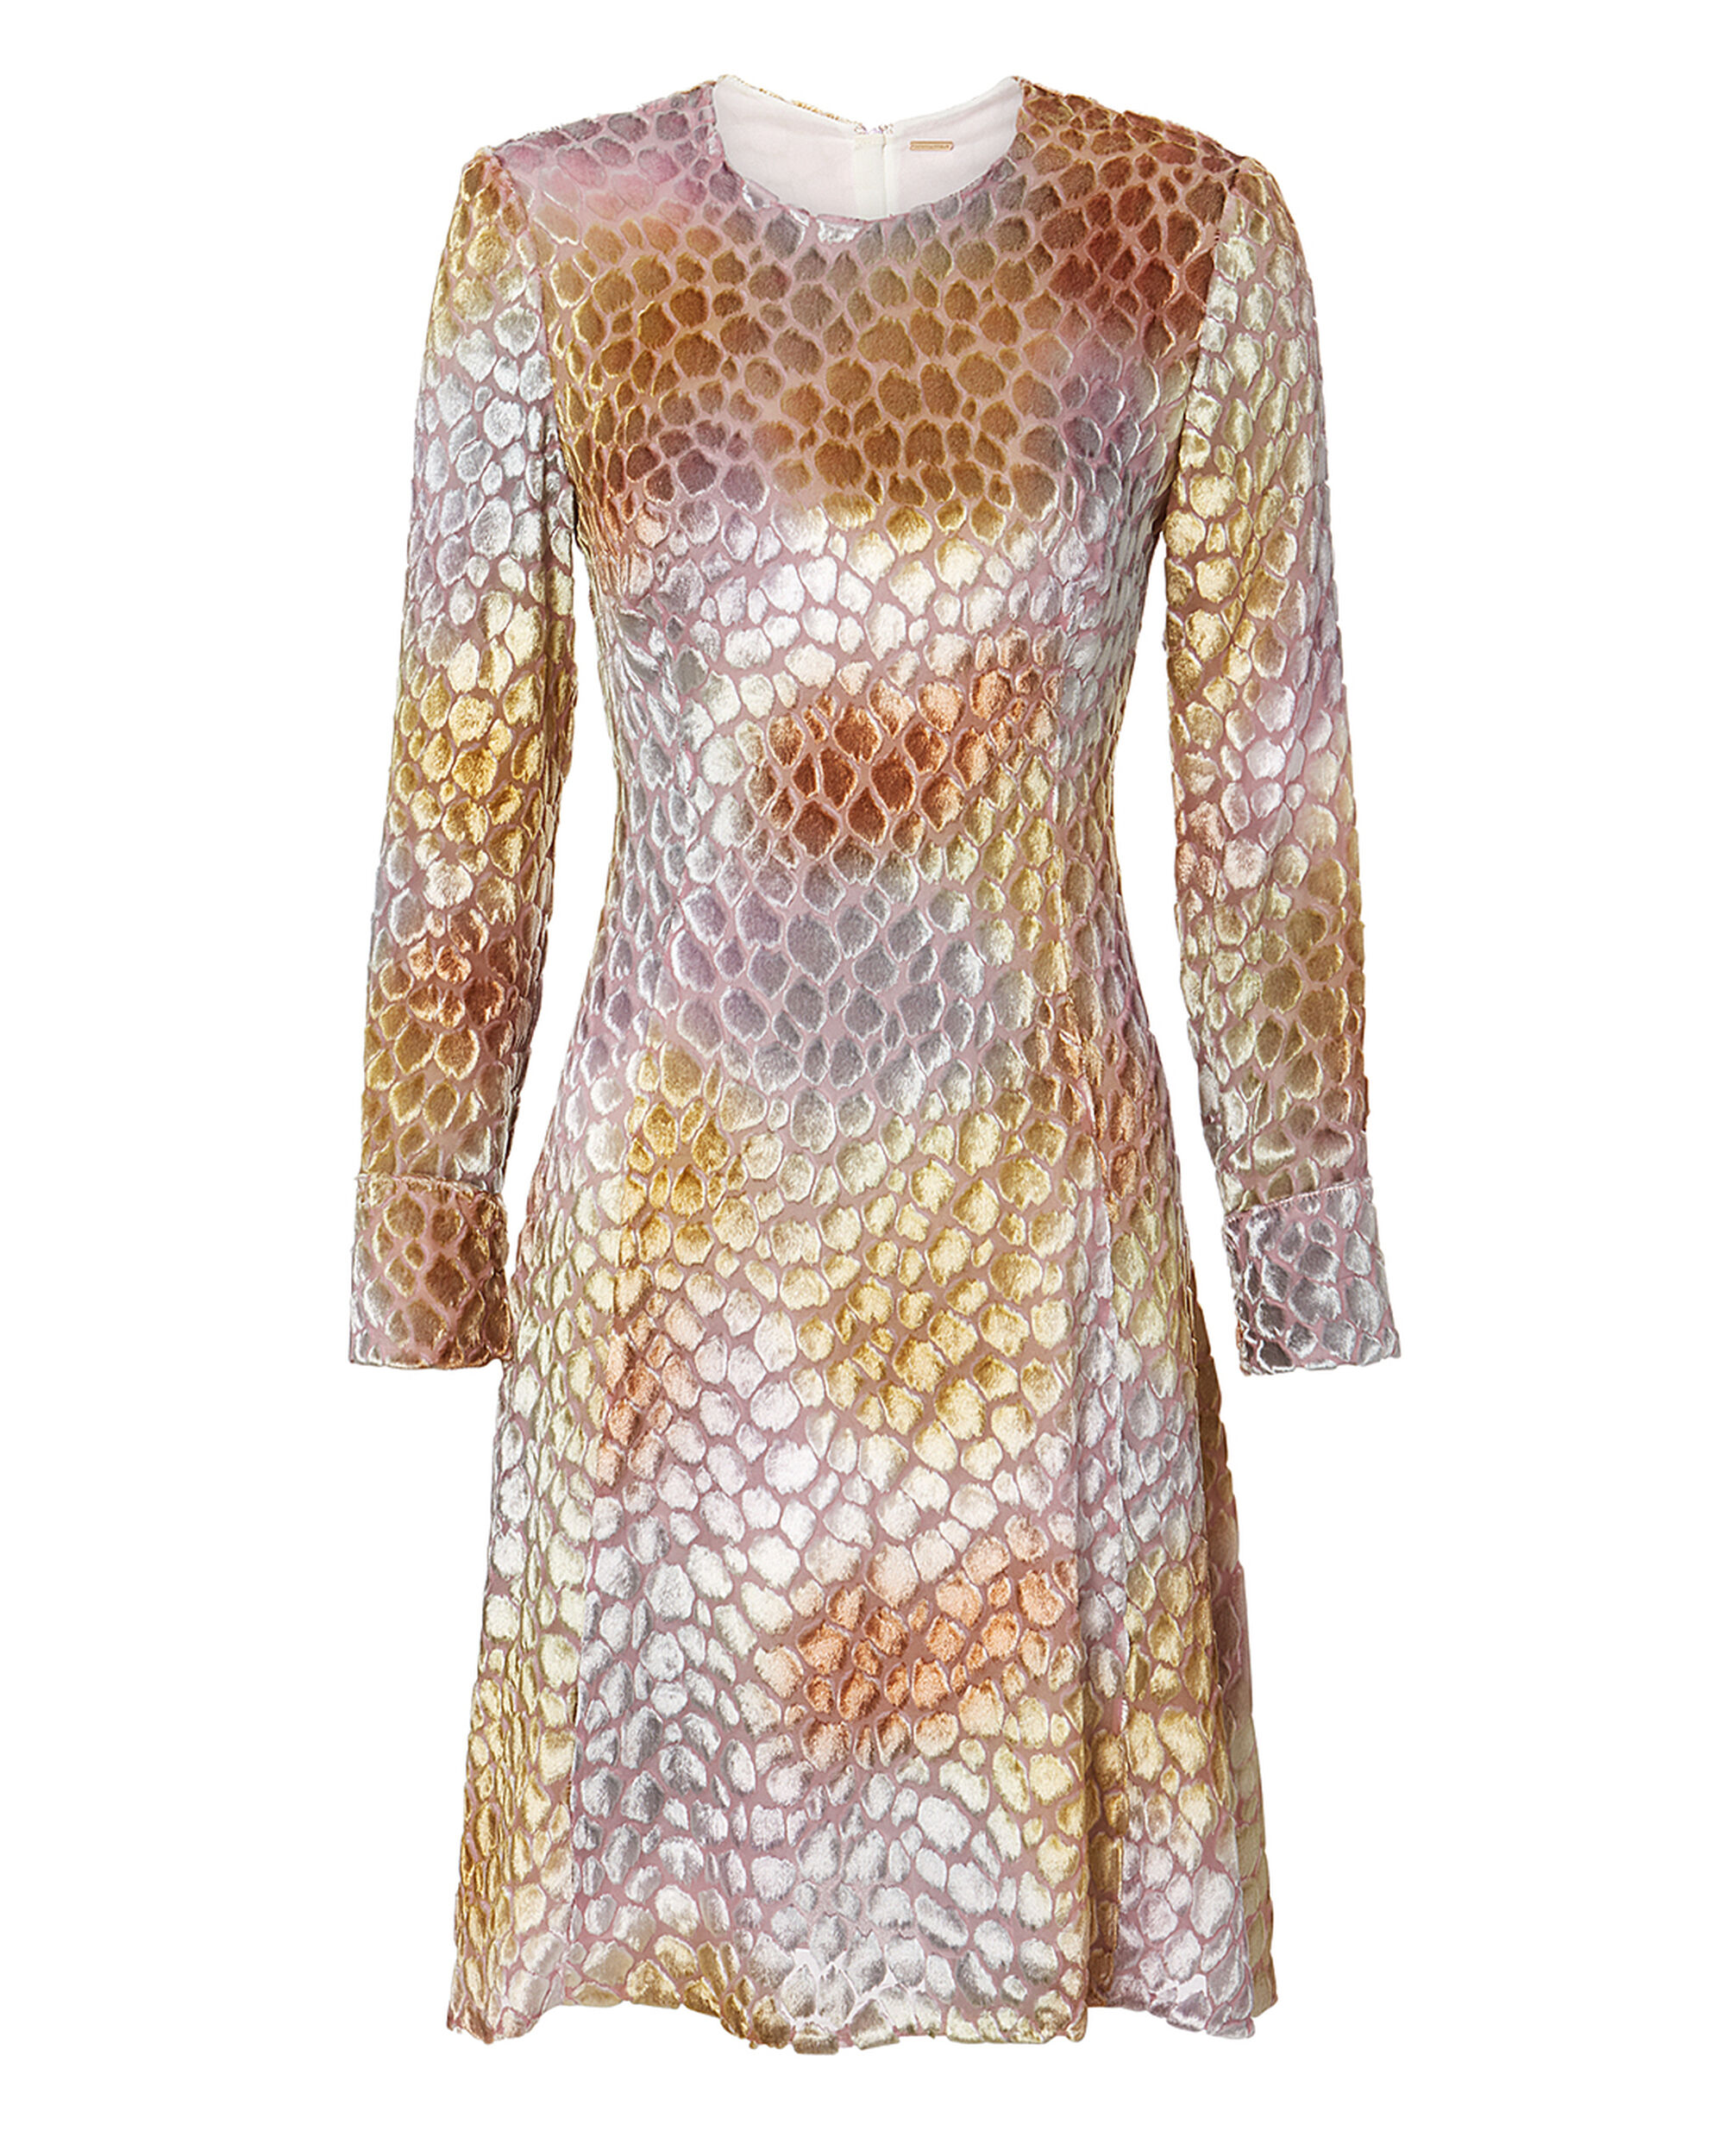 Painted Velvet Jacquard Dress, MULTI, hi-res